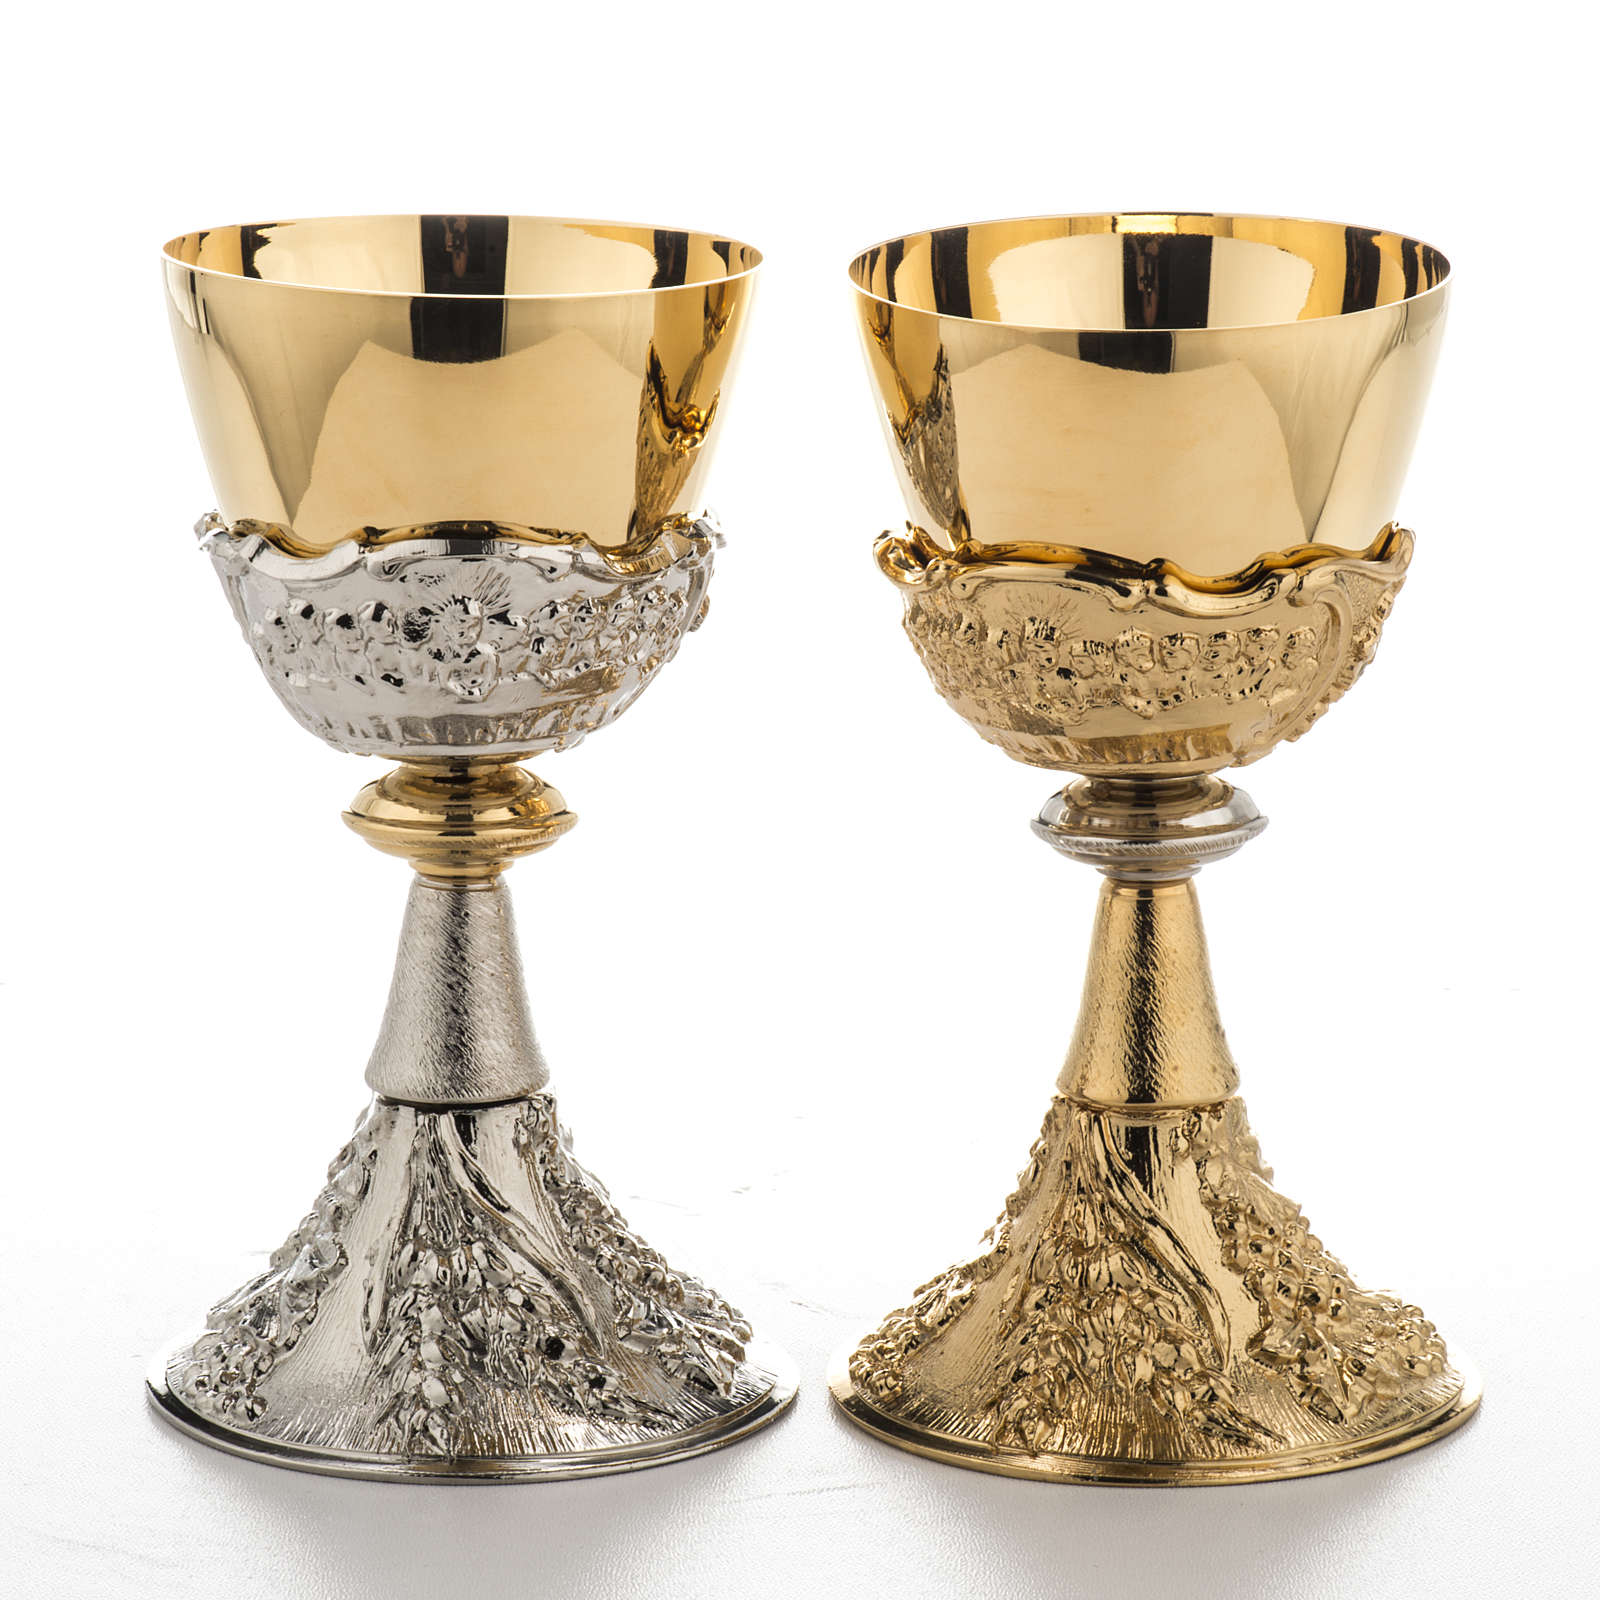 Chalice, The Last Supper 4